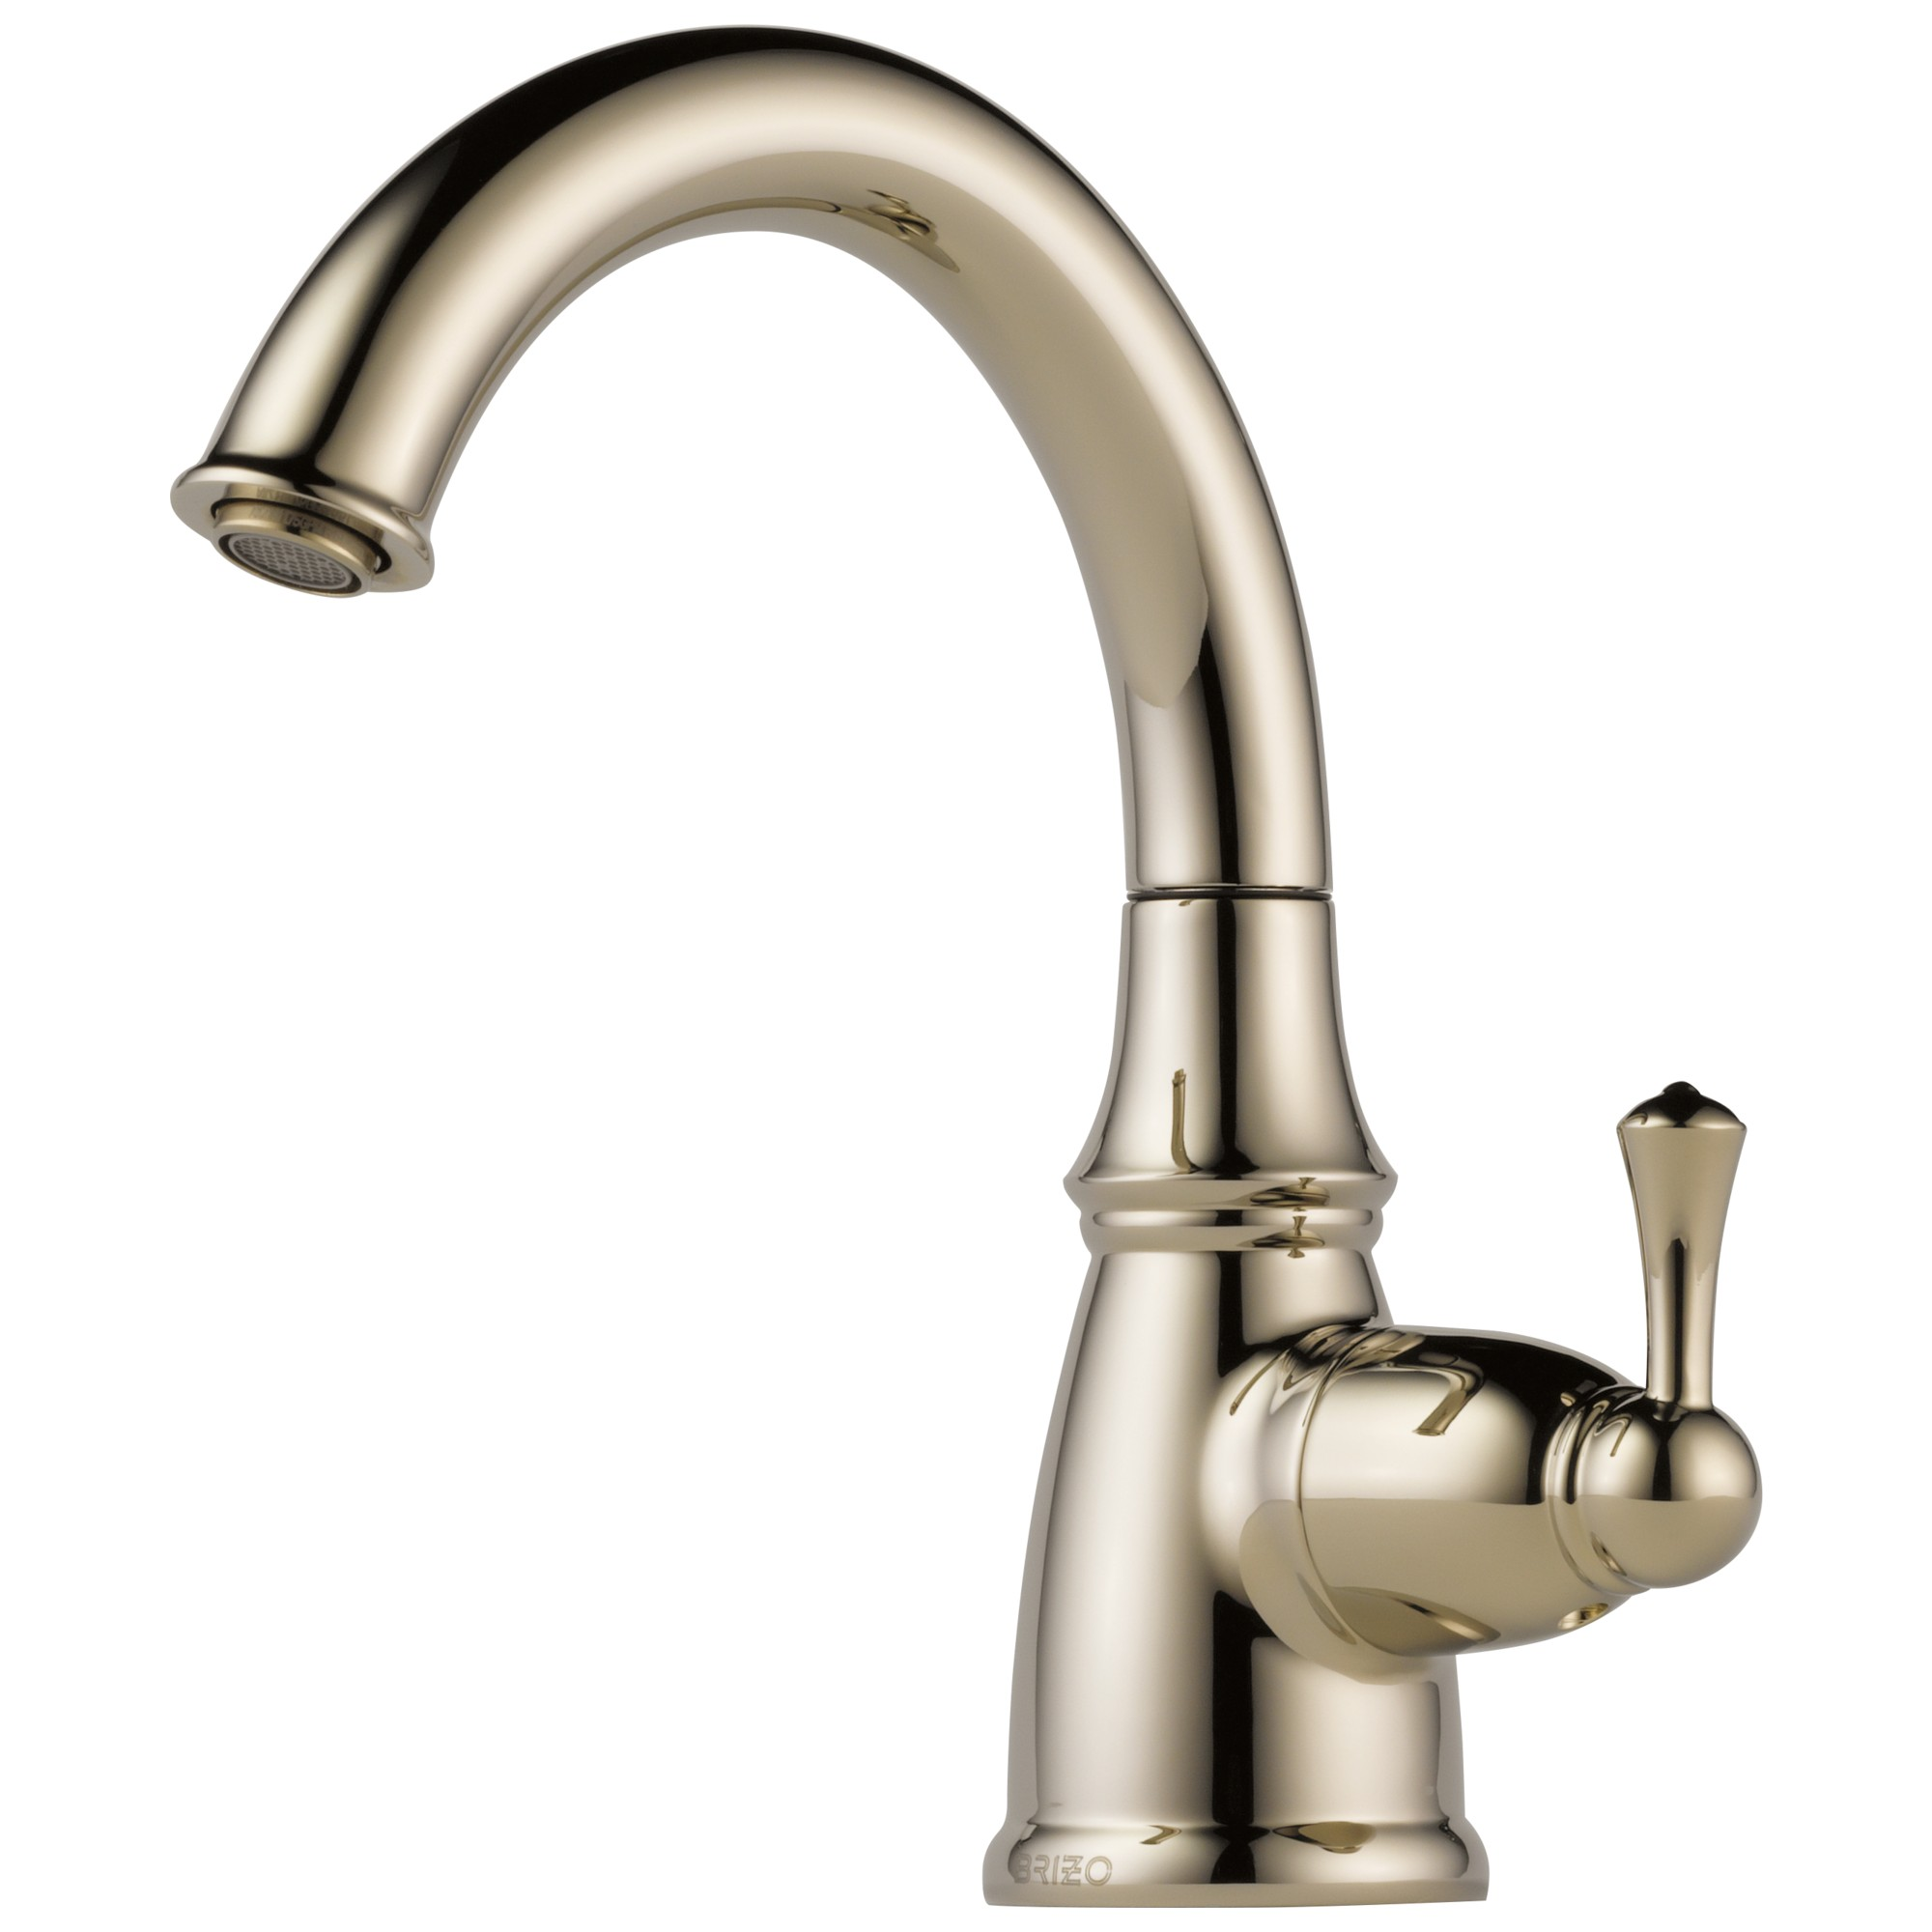 Brizo 61310LF-PN Other Beverage Faucet - Polished Nickel